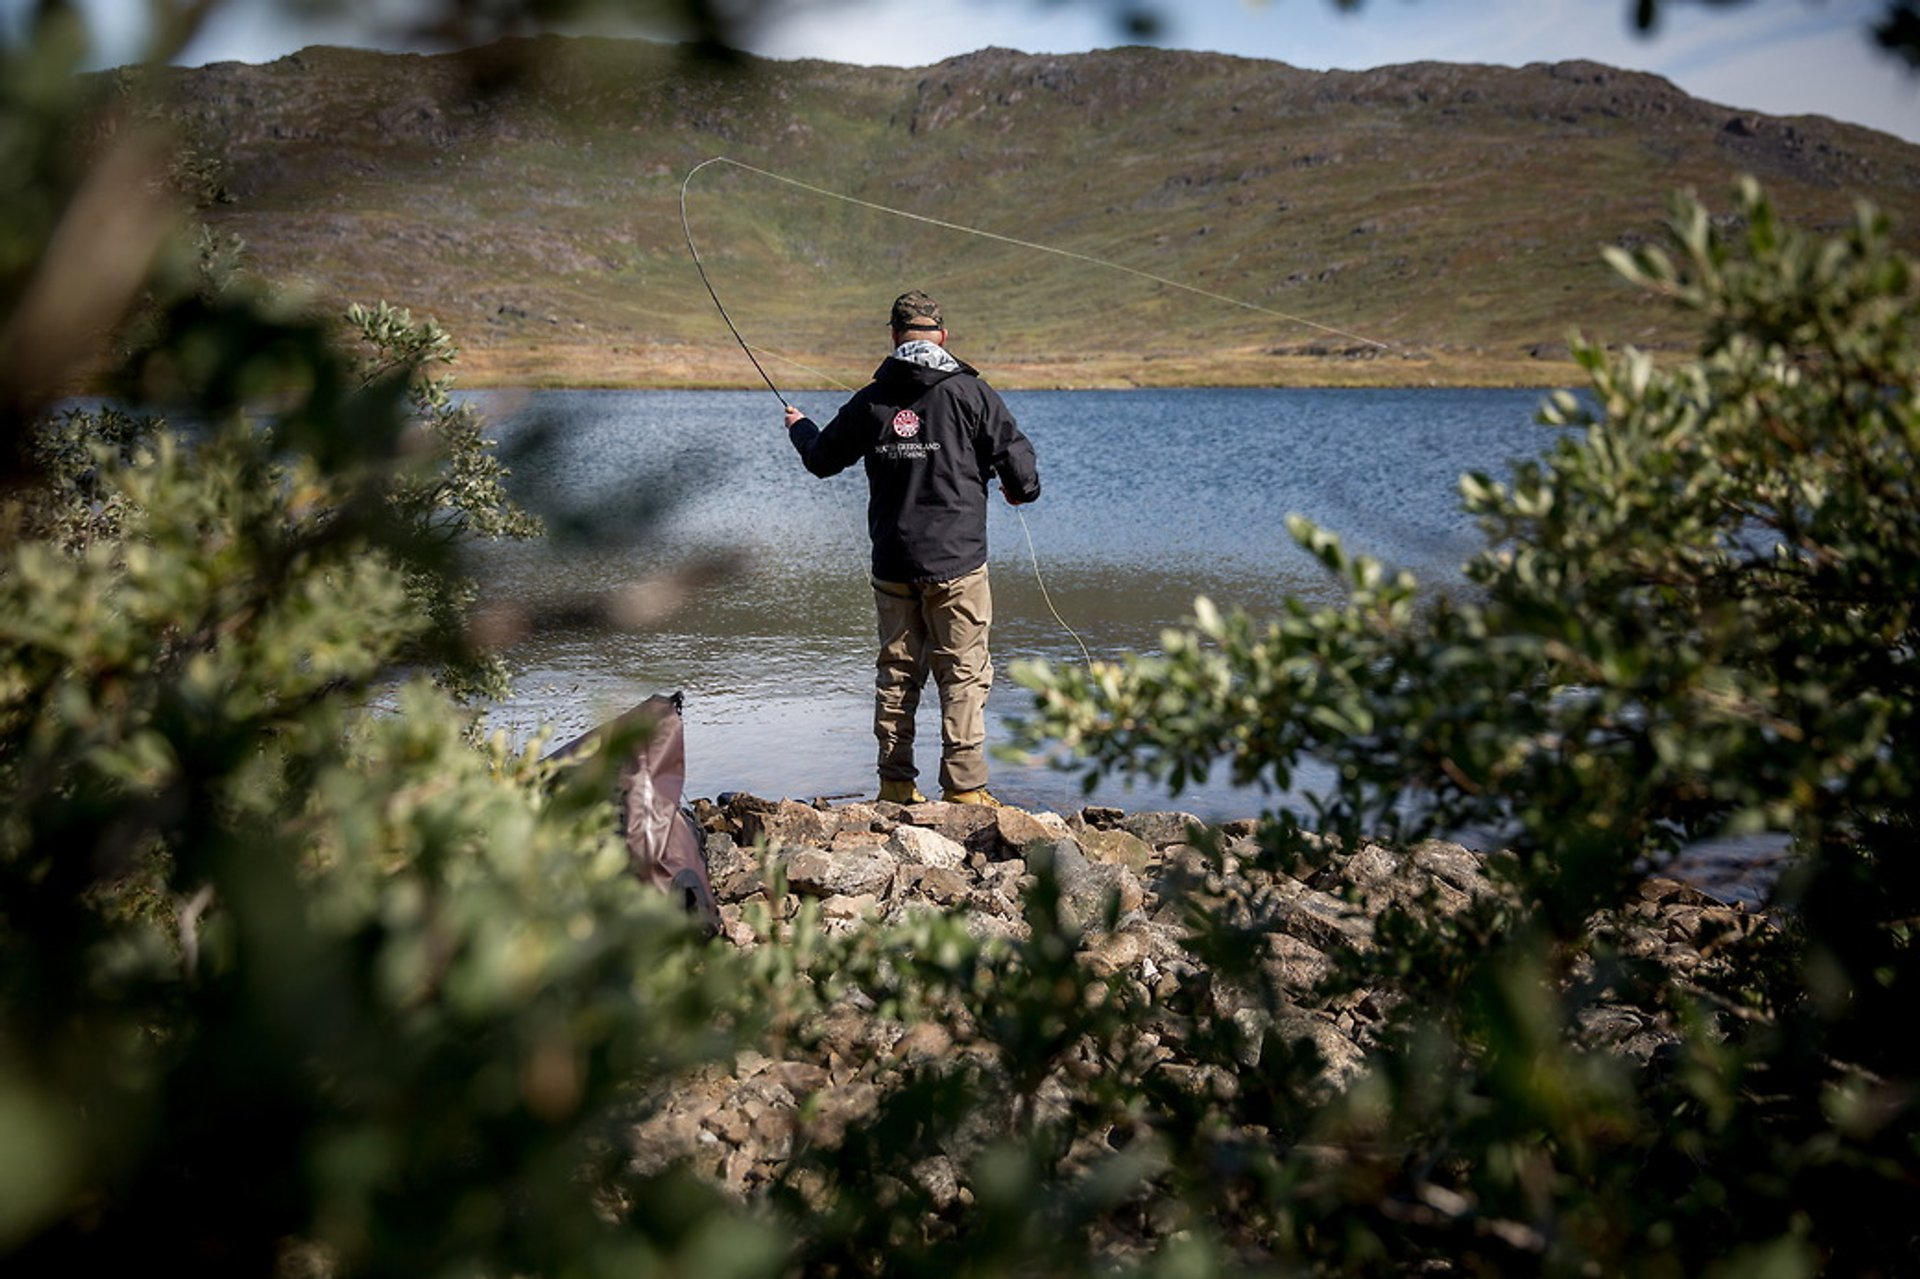 Fly fishing in the south of Greenland 2020